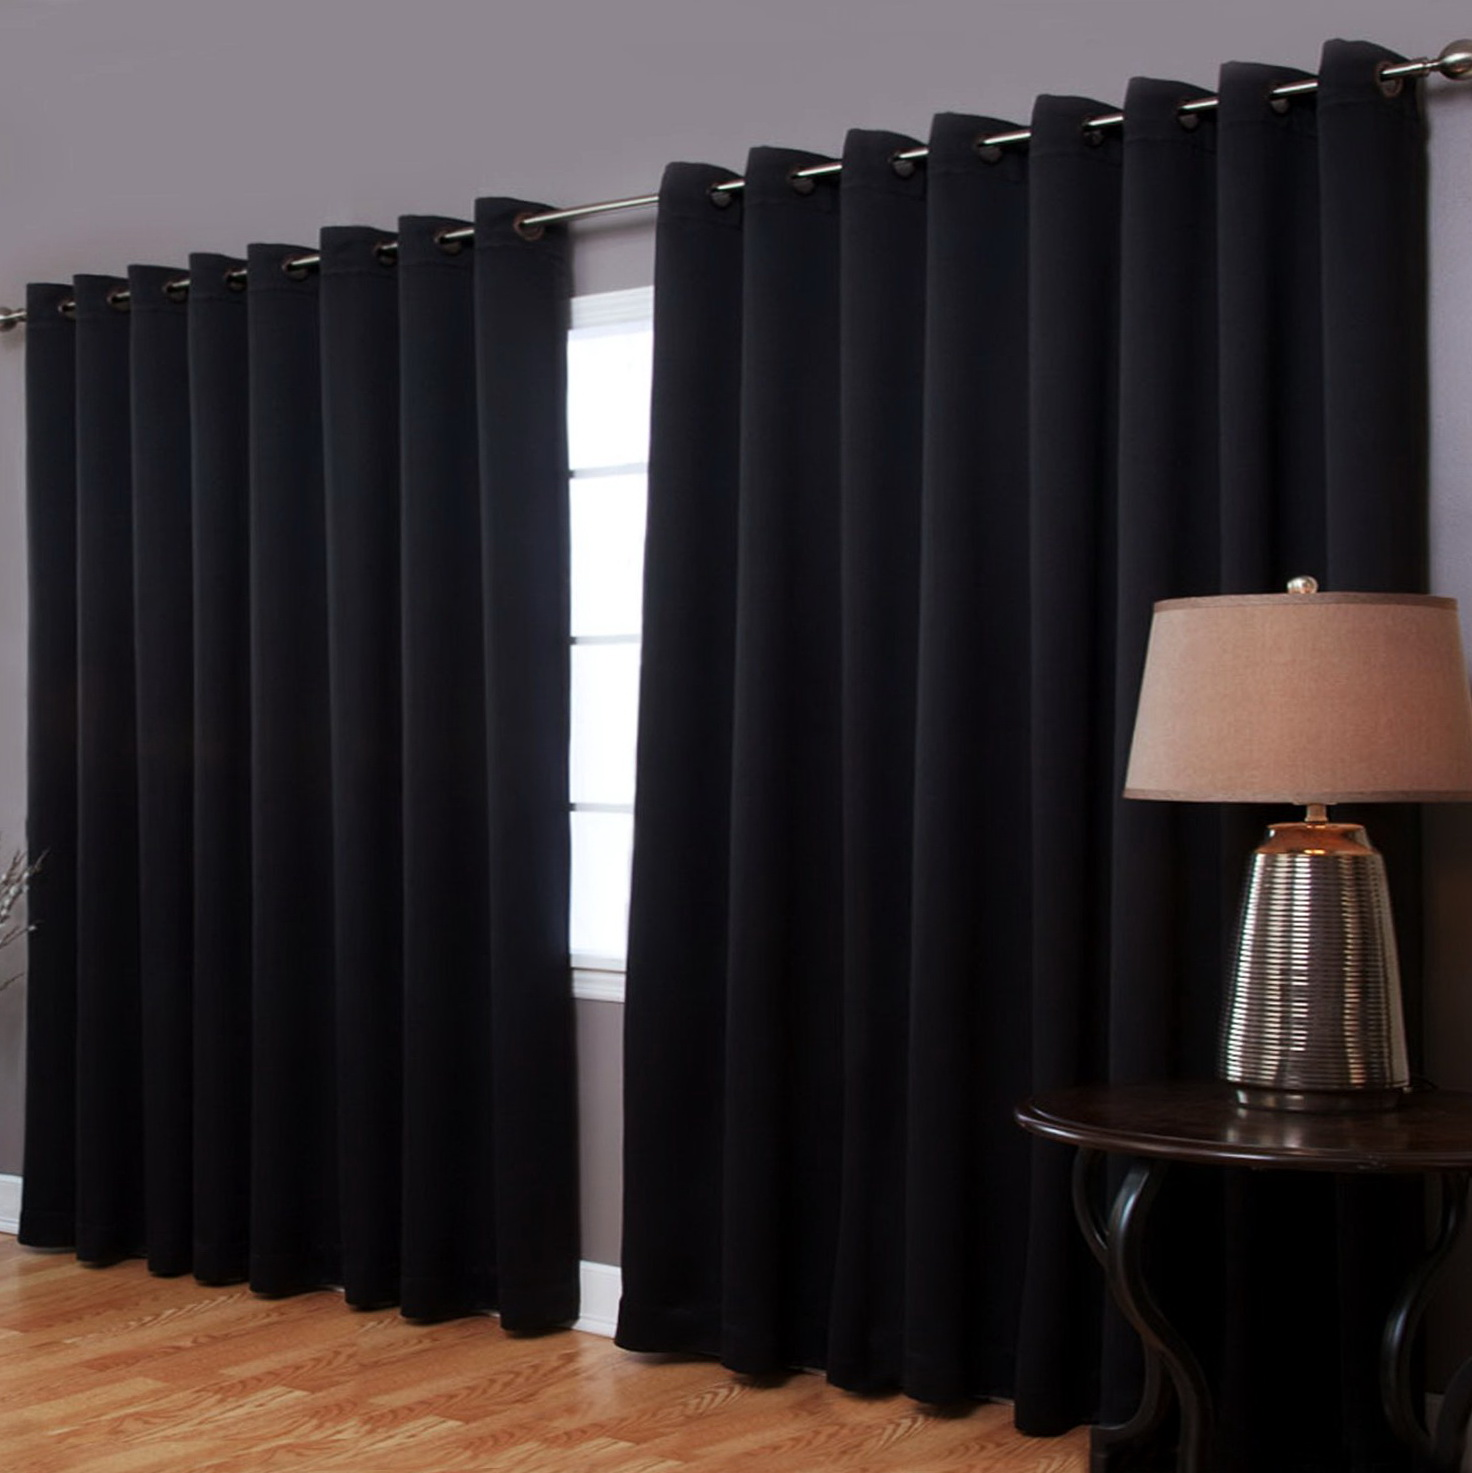 96 Inch Blackout Curtains Home Design Ideas